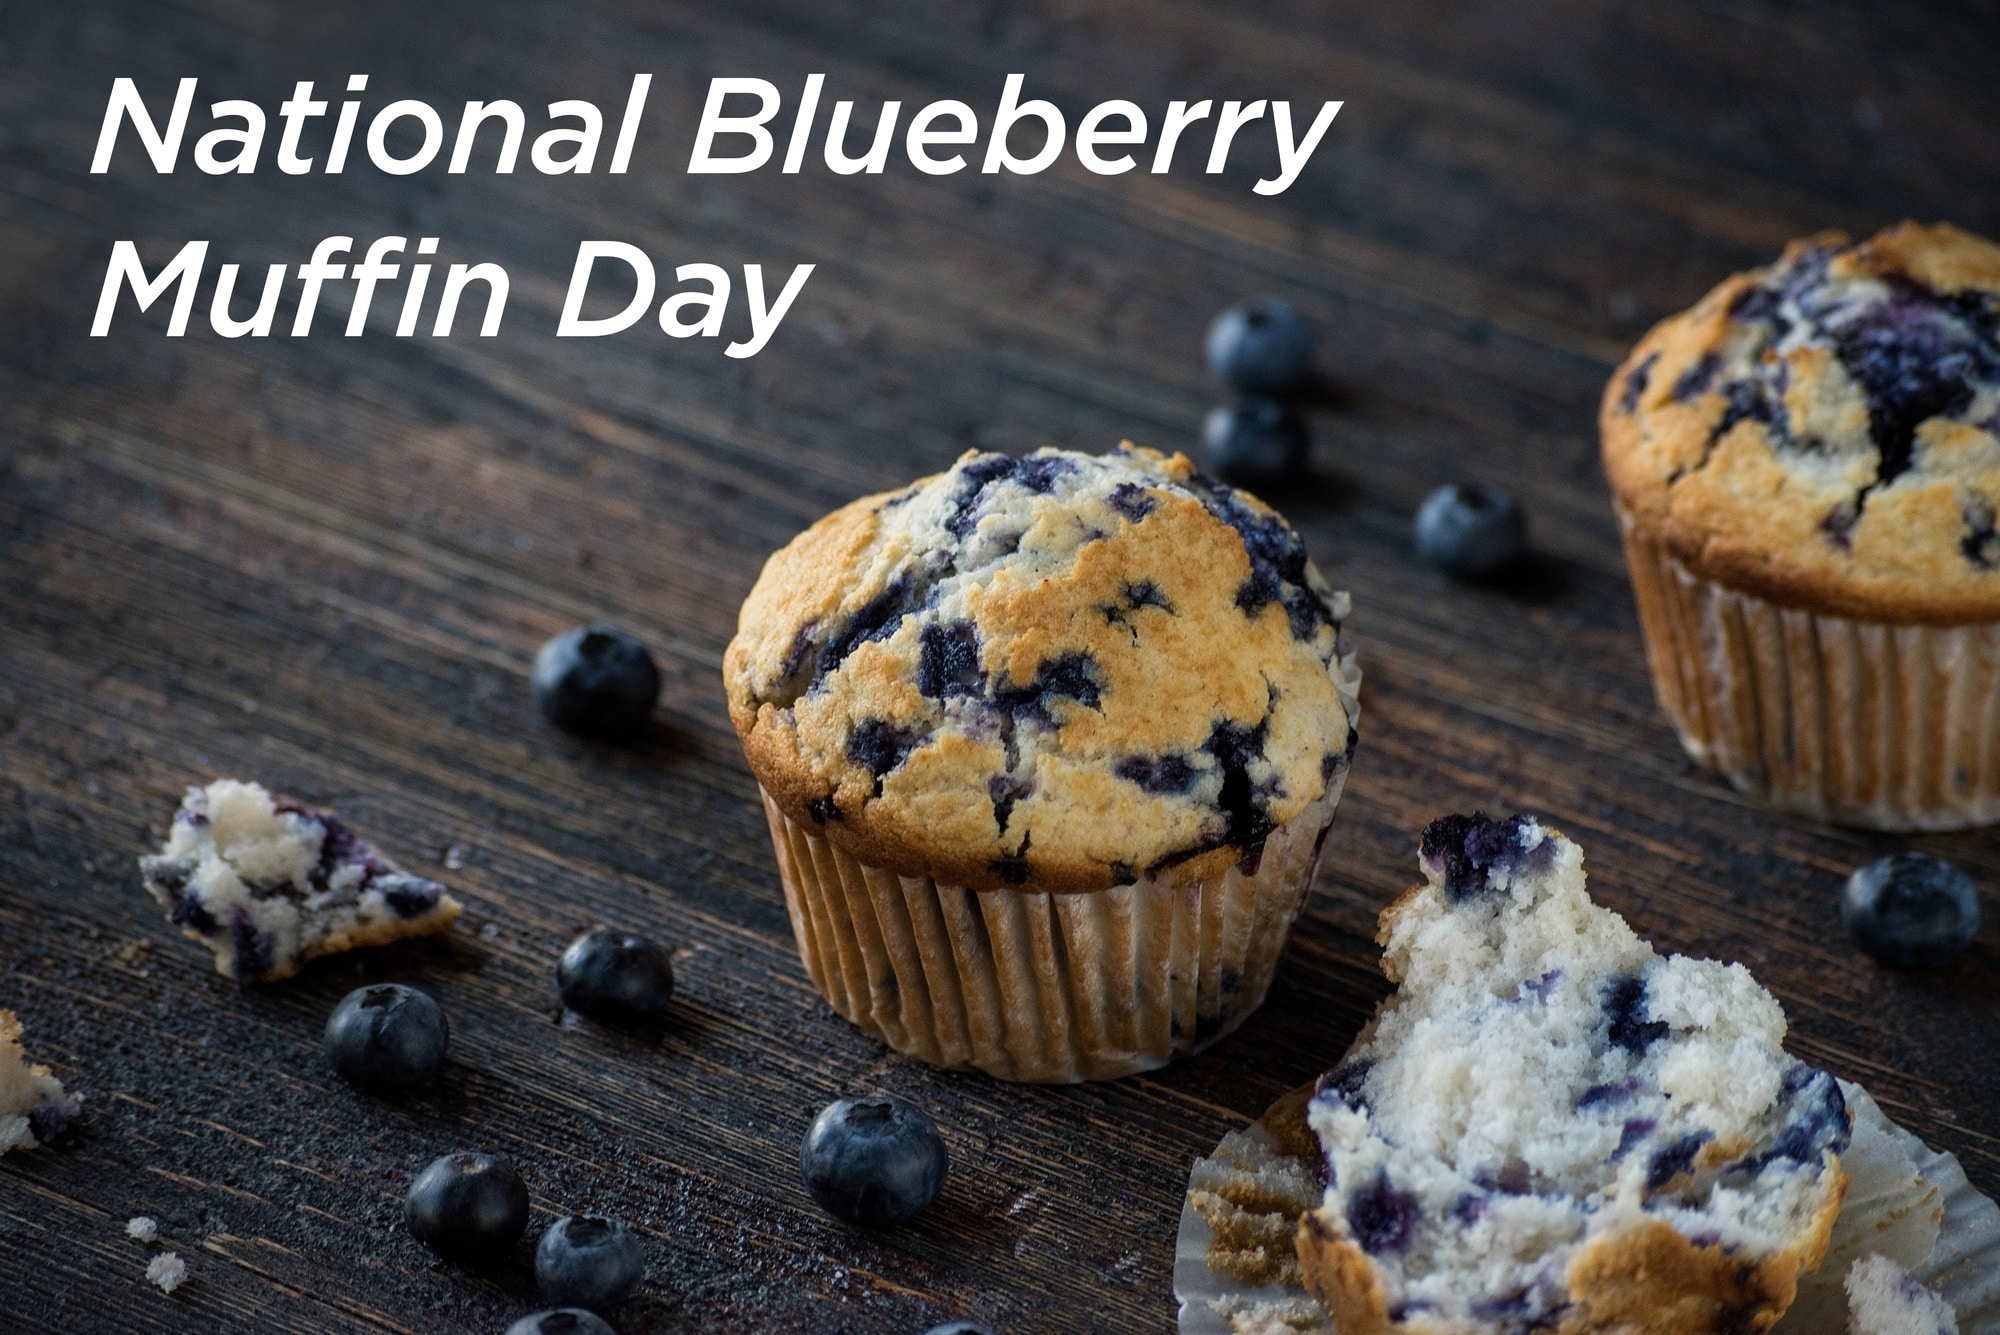 National-Blueberry-Muffin-Day-blog-image